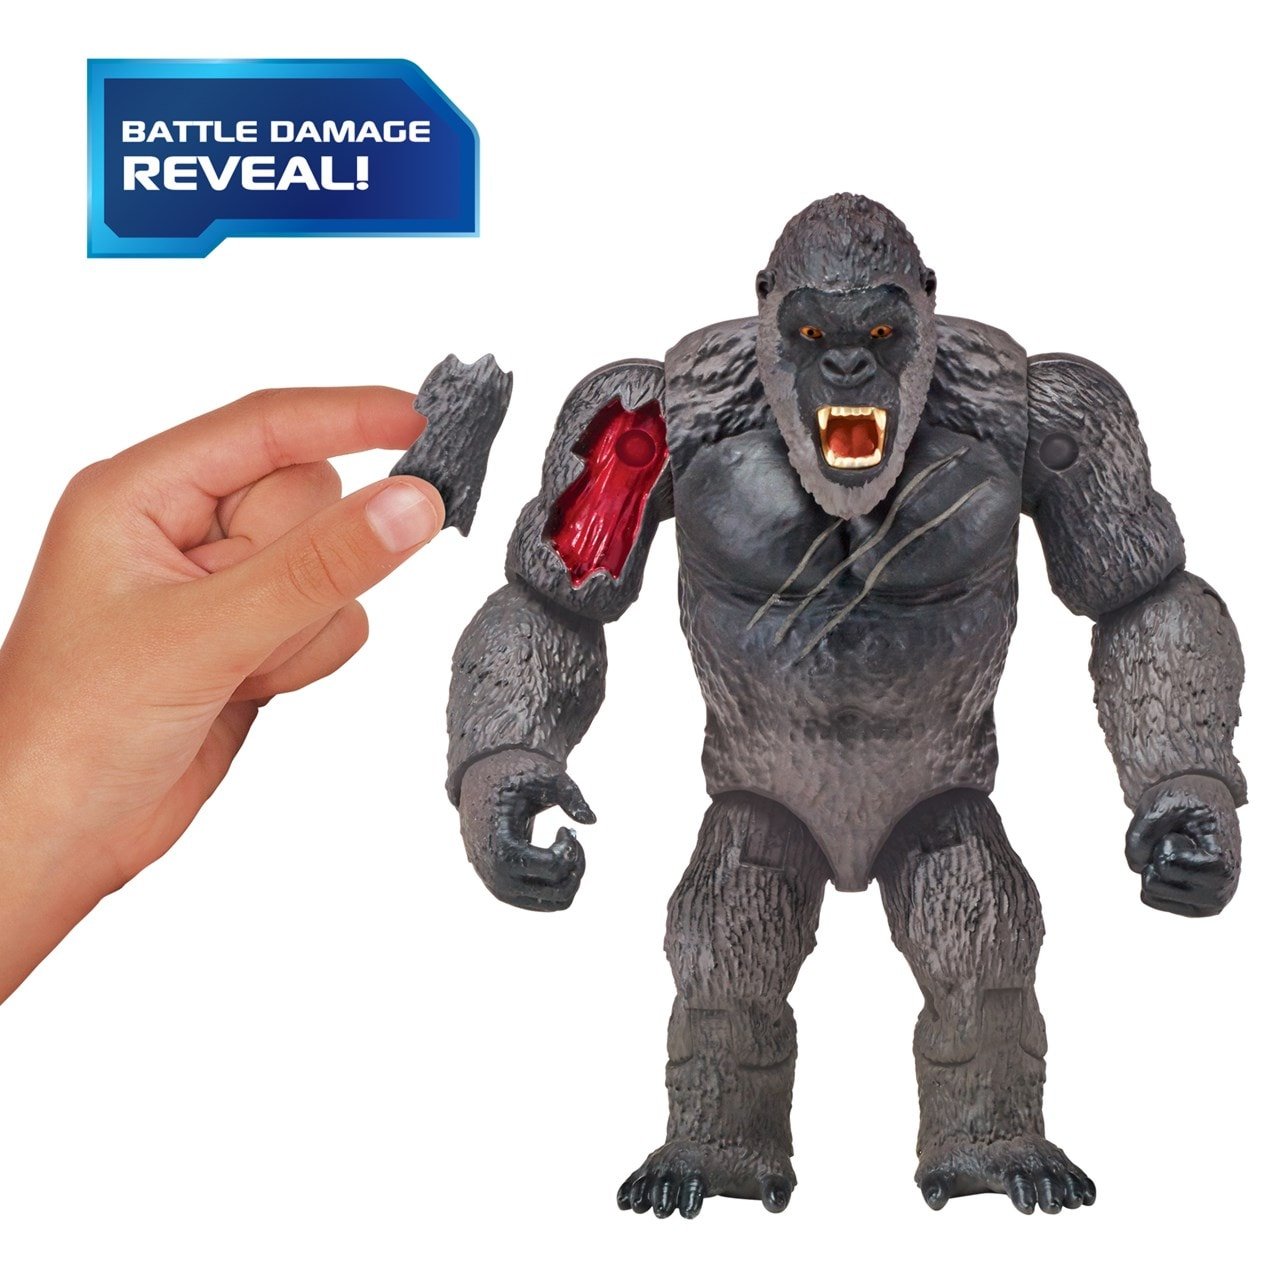 Monsterverse Godzilla vs Kong: King Kong with Axe Action Figure - 2